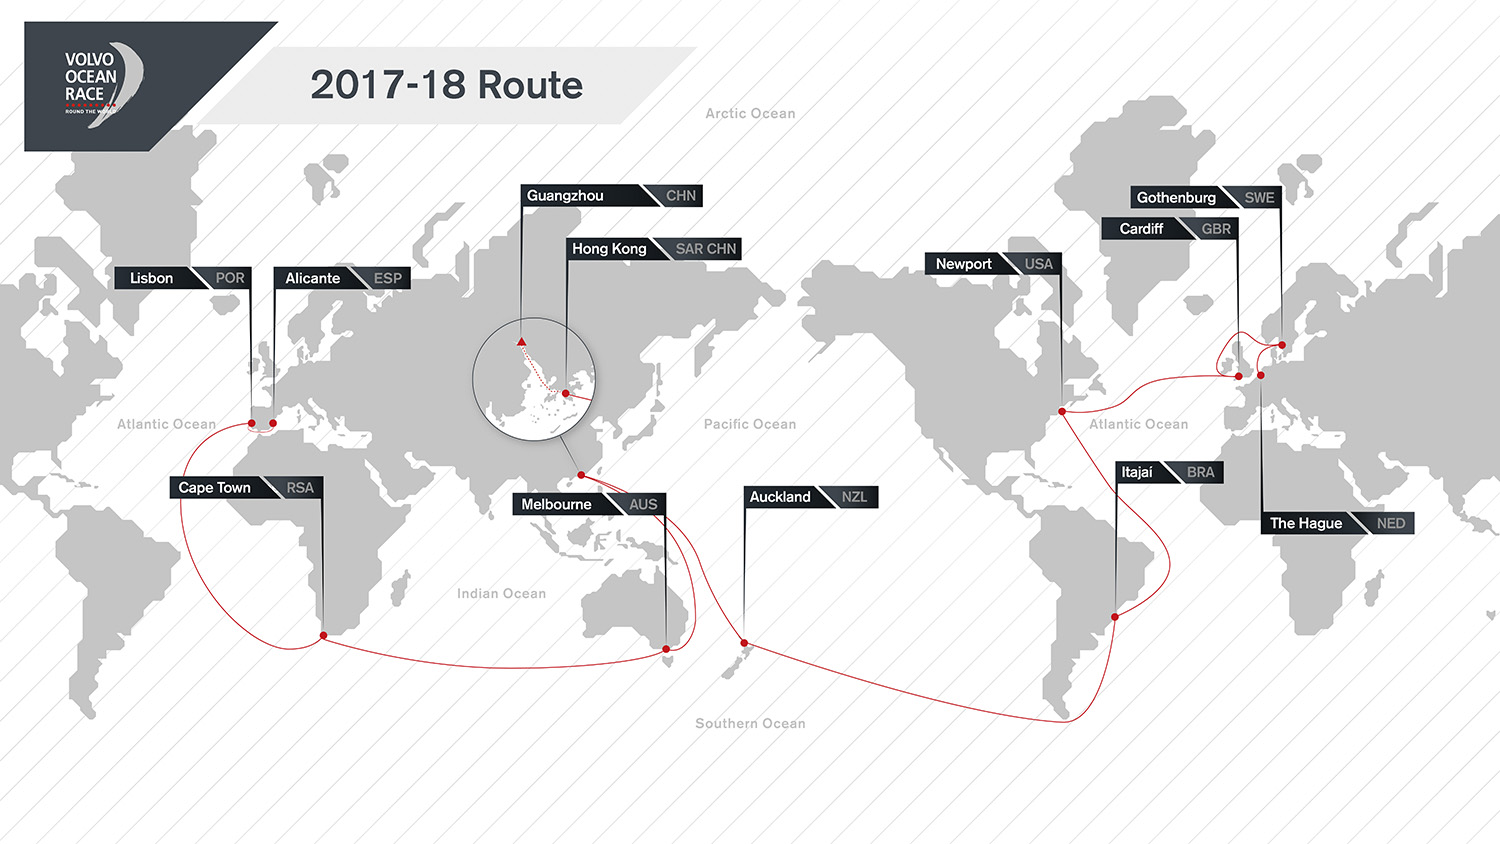 The latest version of the Volvo Ocean Race 2017-18 Route Map. The route will see the boats race three times more Southern Ocean miles than in recent editions, visiting 12 cities around the globe..